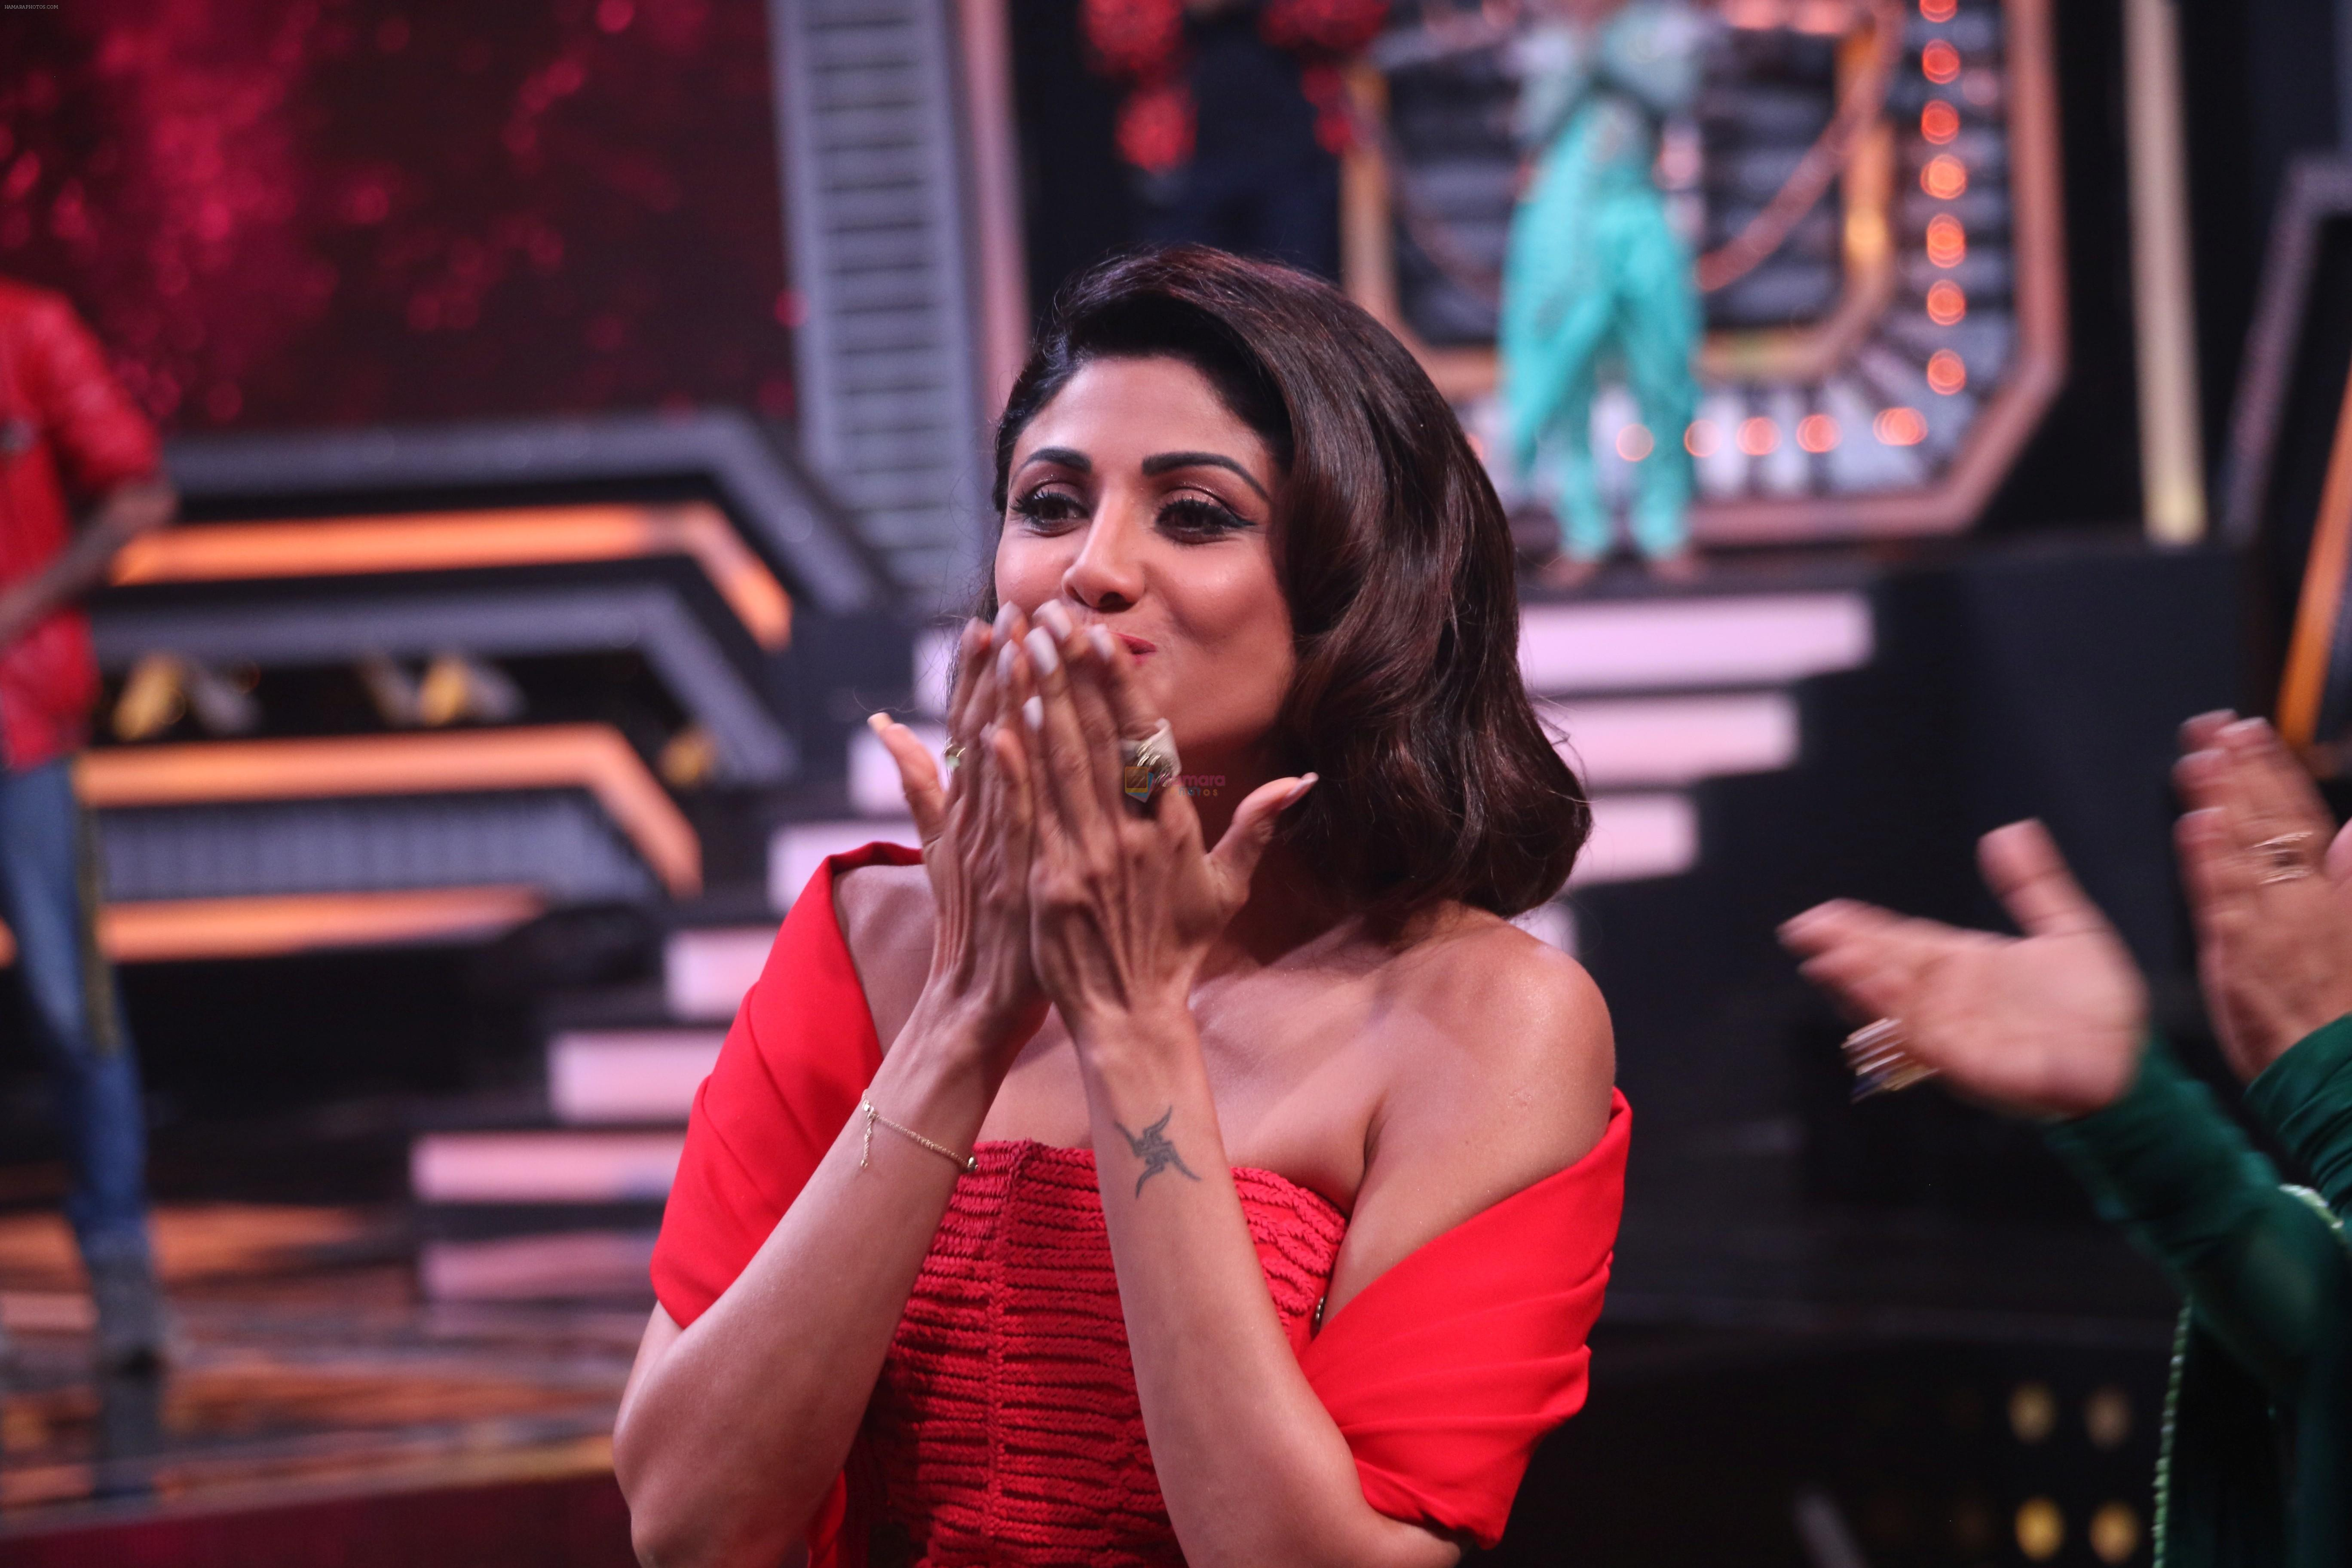 Shilpa Shetty on the sets of Super Dancer Chapter 3 in filmcity on 3rd June 2019